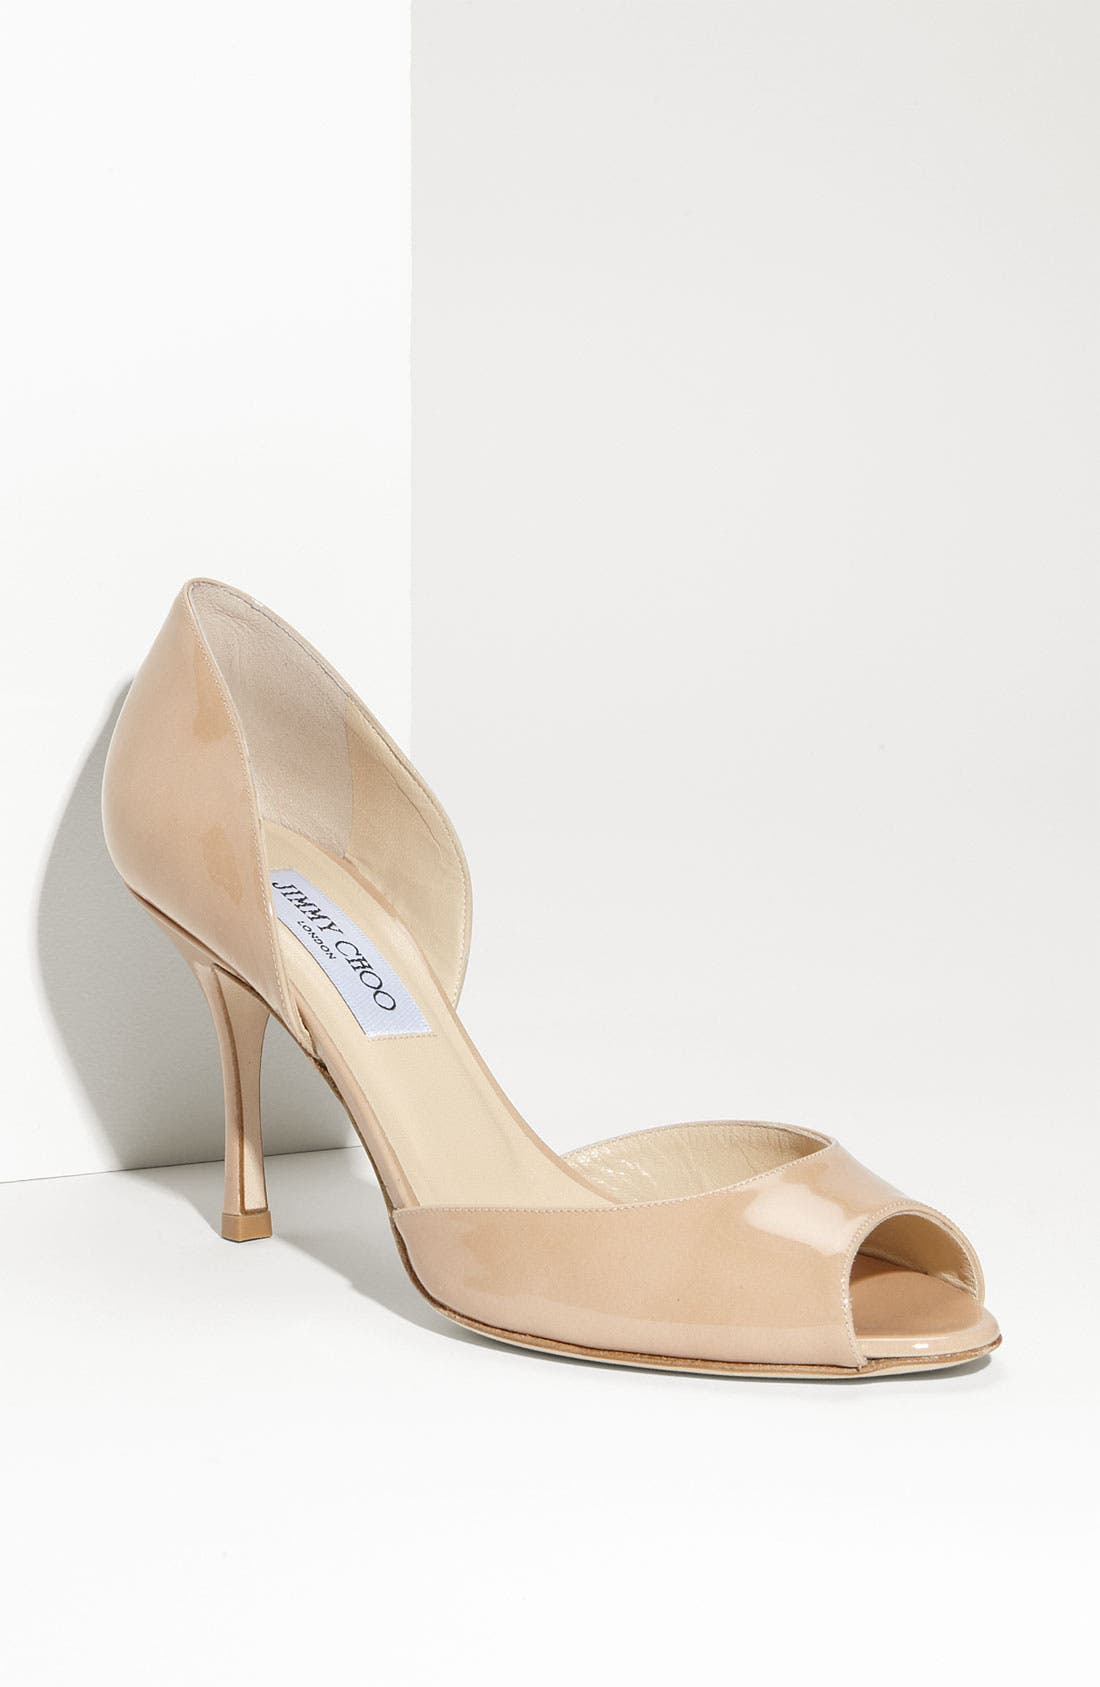 Alternate Image 1 Selected - Jimmy Choo 'Logan' d'Orsay Pump